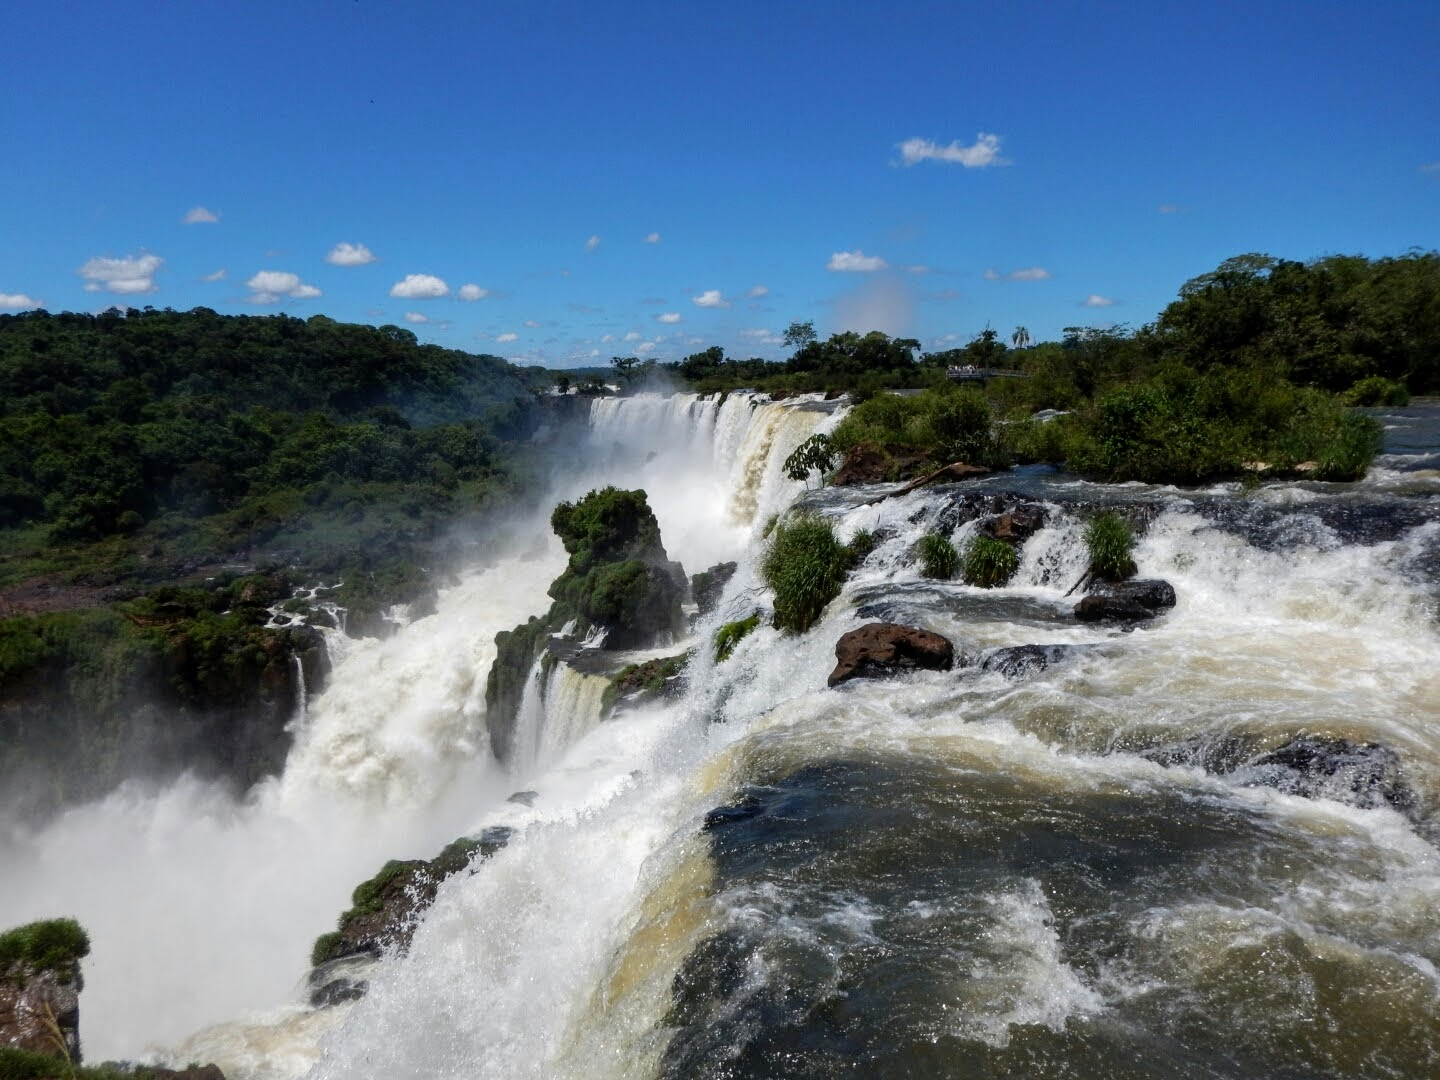 Iguazu falls from the Argentinan side